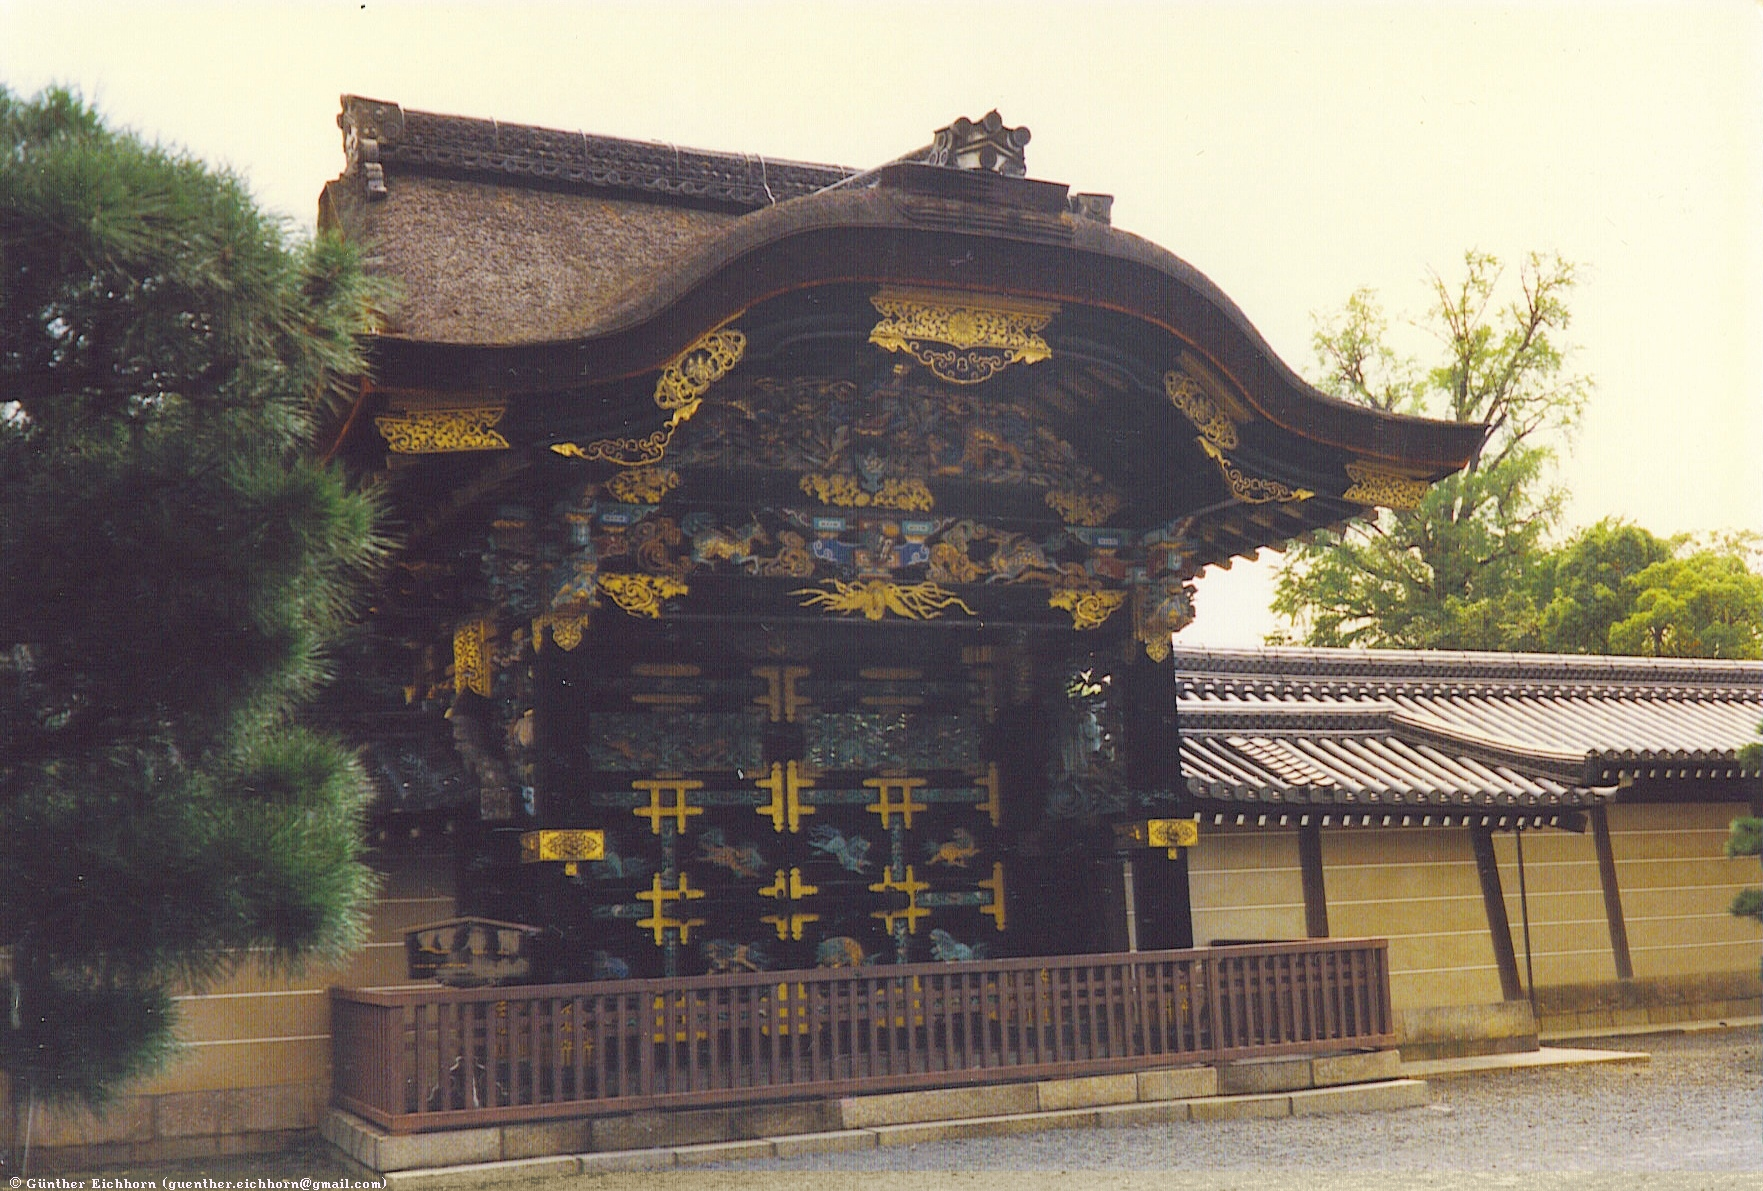 Temples, Shrines, and Palaces in 日本国 (Japan)